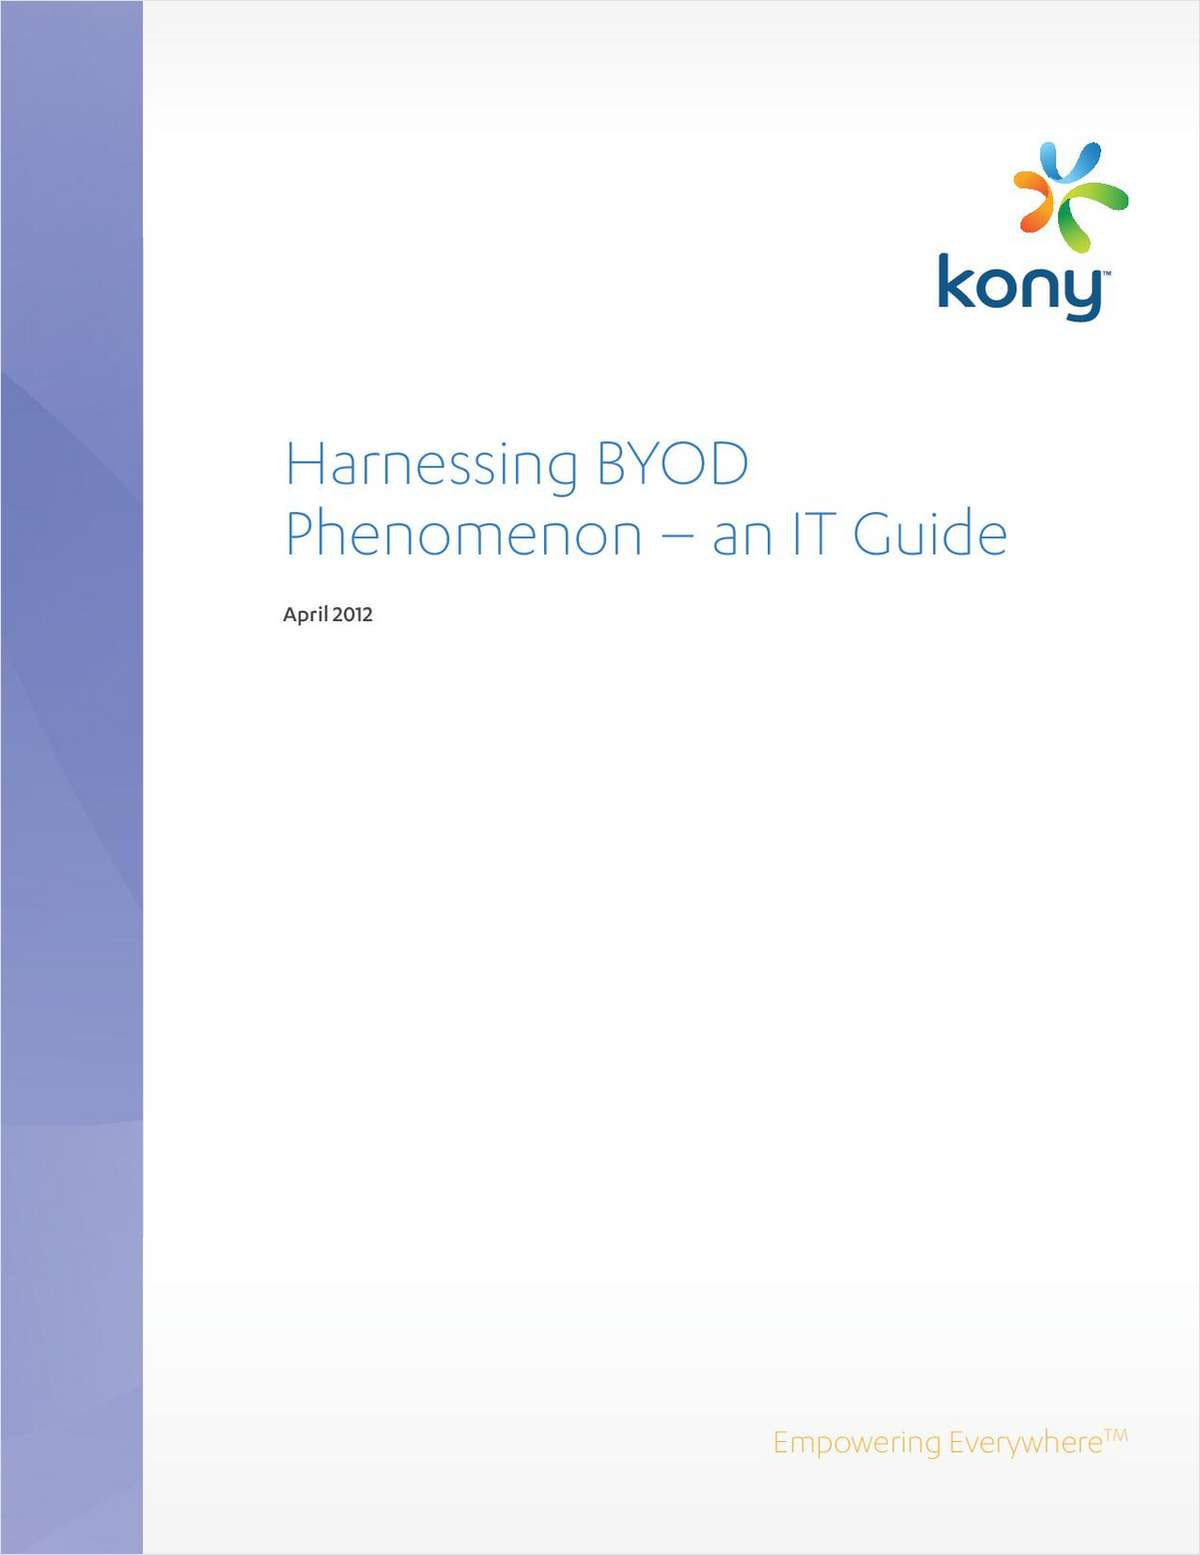 Harnessing the BYOD Phenomenon - an IT Guide